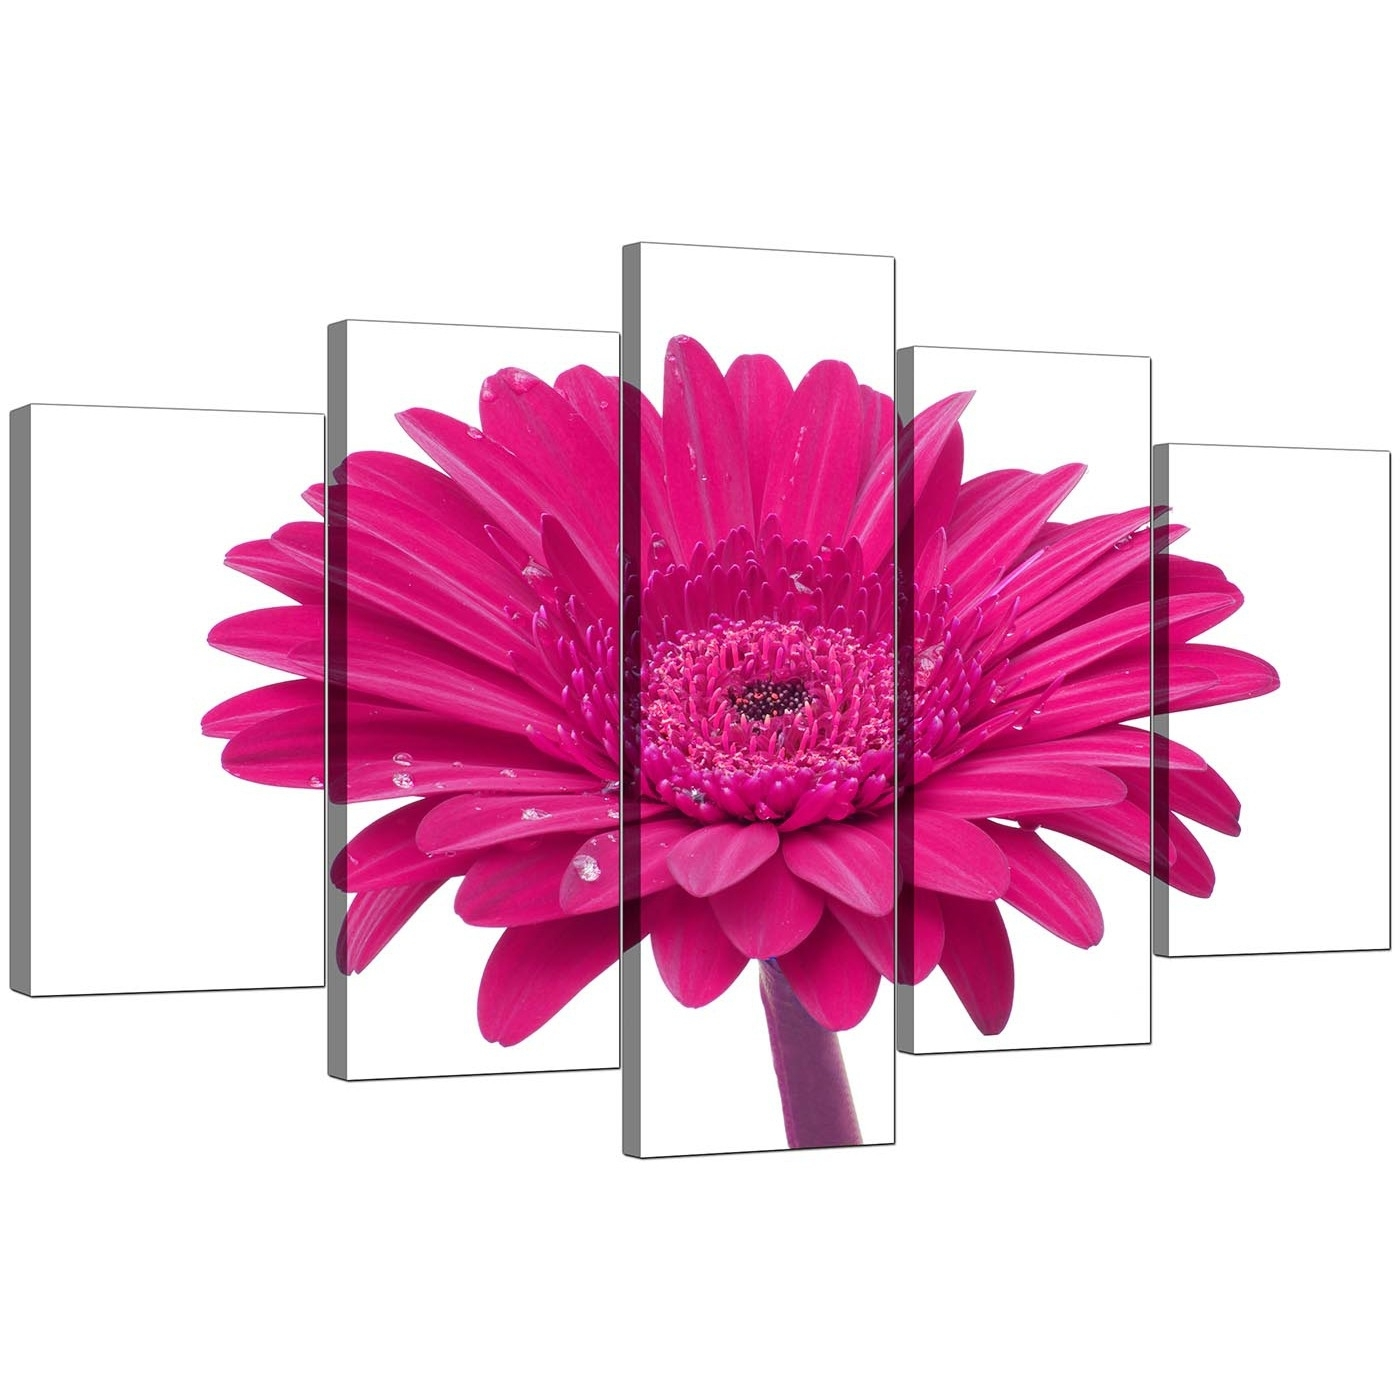 Extra Large Flower Canvas Wall Art 5 Piece In Pink Intended For Most Popular Pink Wall Art (View 13 of 20)